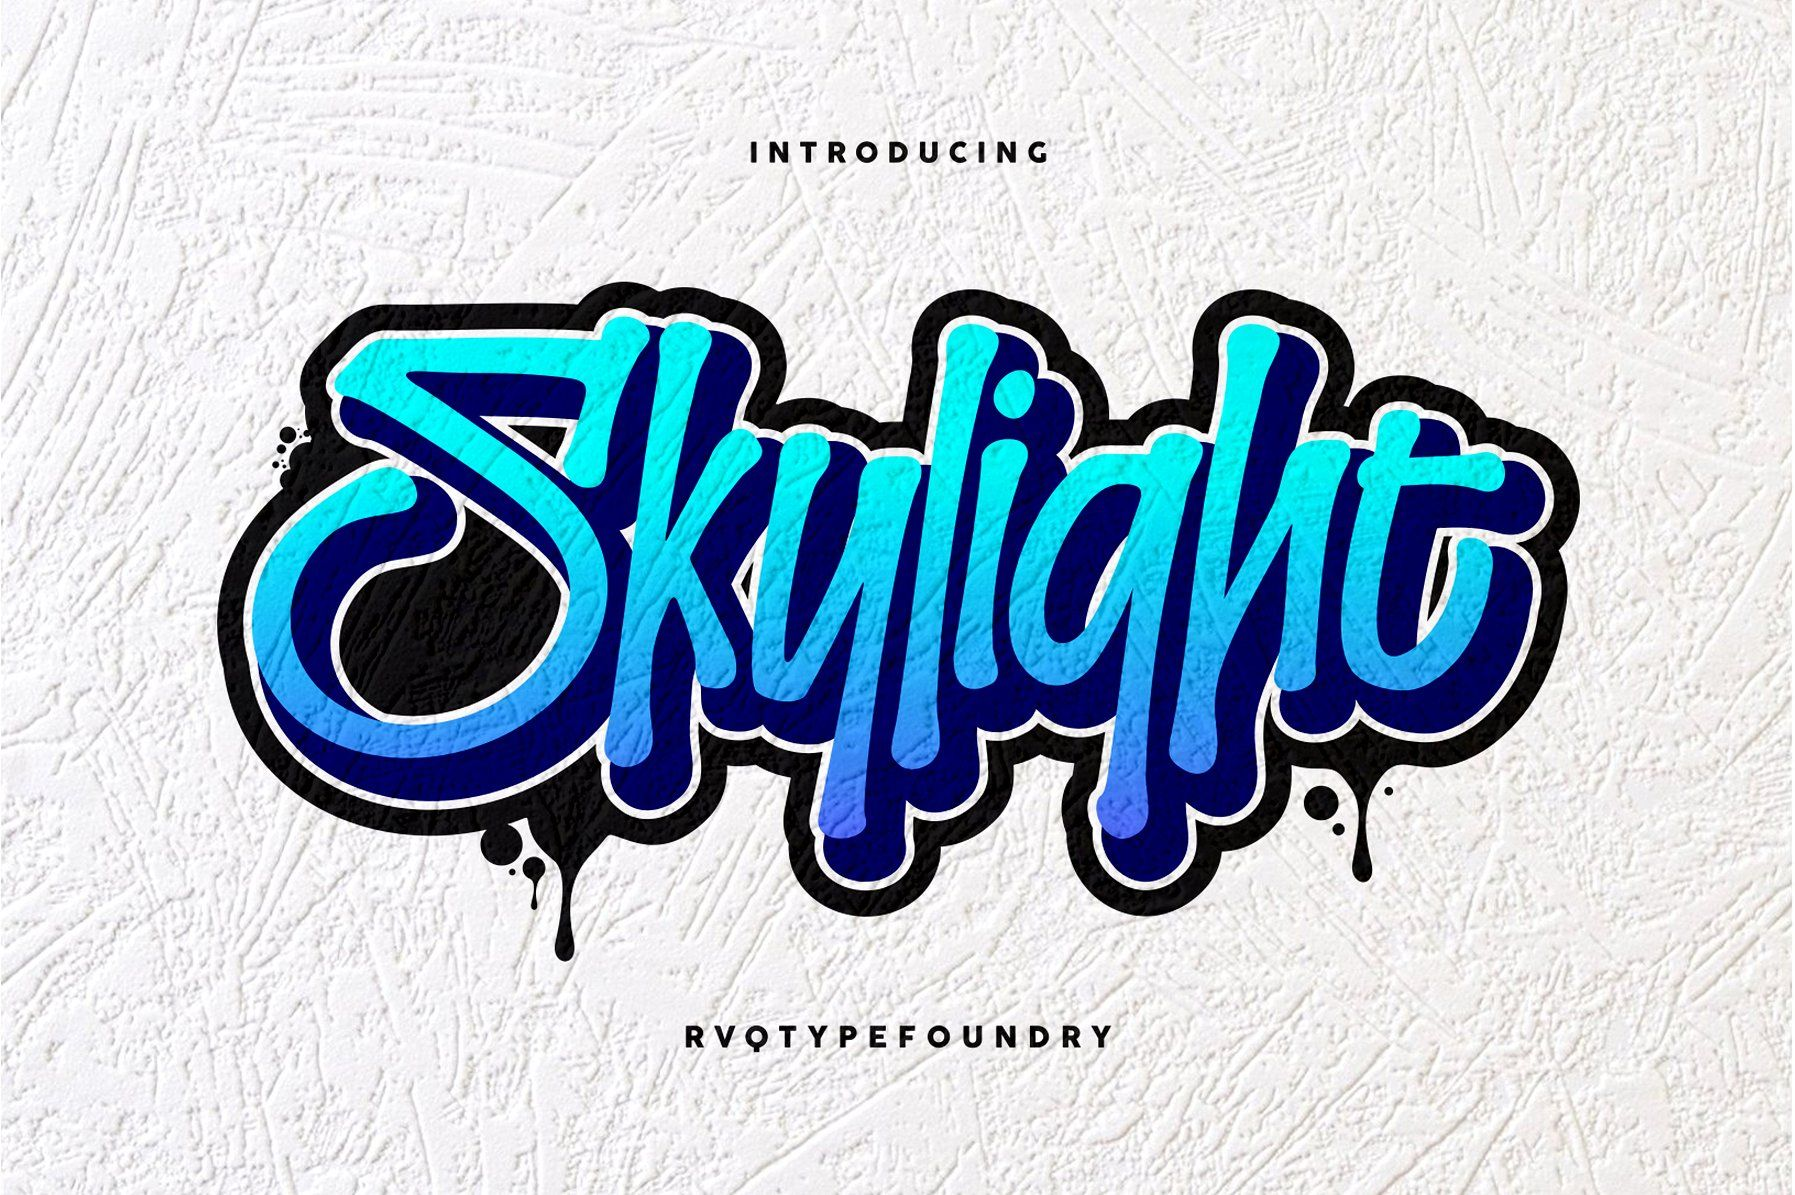 The Skylight Graffiti Is New Font From Rvq Typefoundry Elegant Feel Character Set To Create The Beautiful Combination Just Mix The Uppercase And